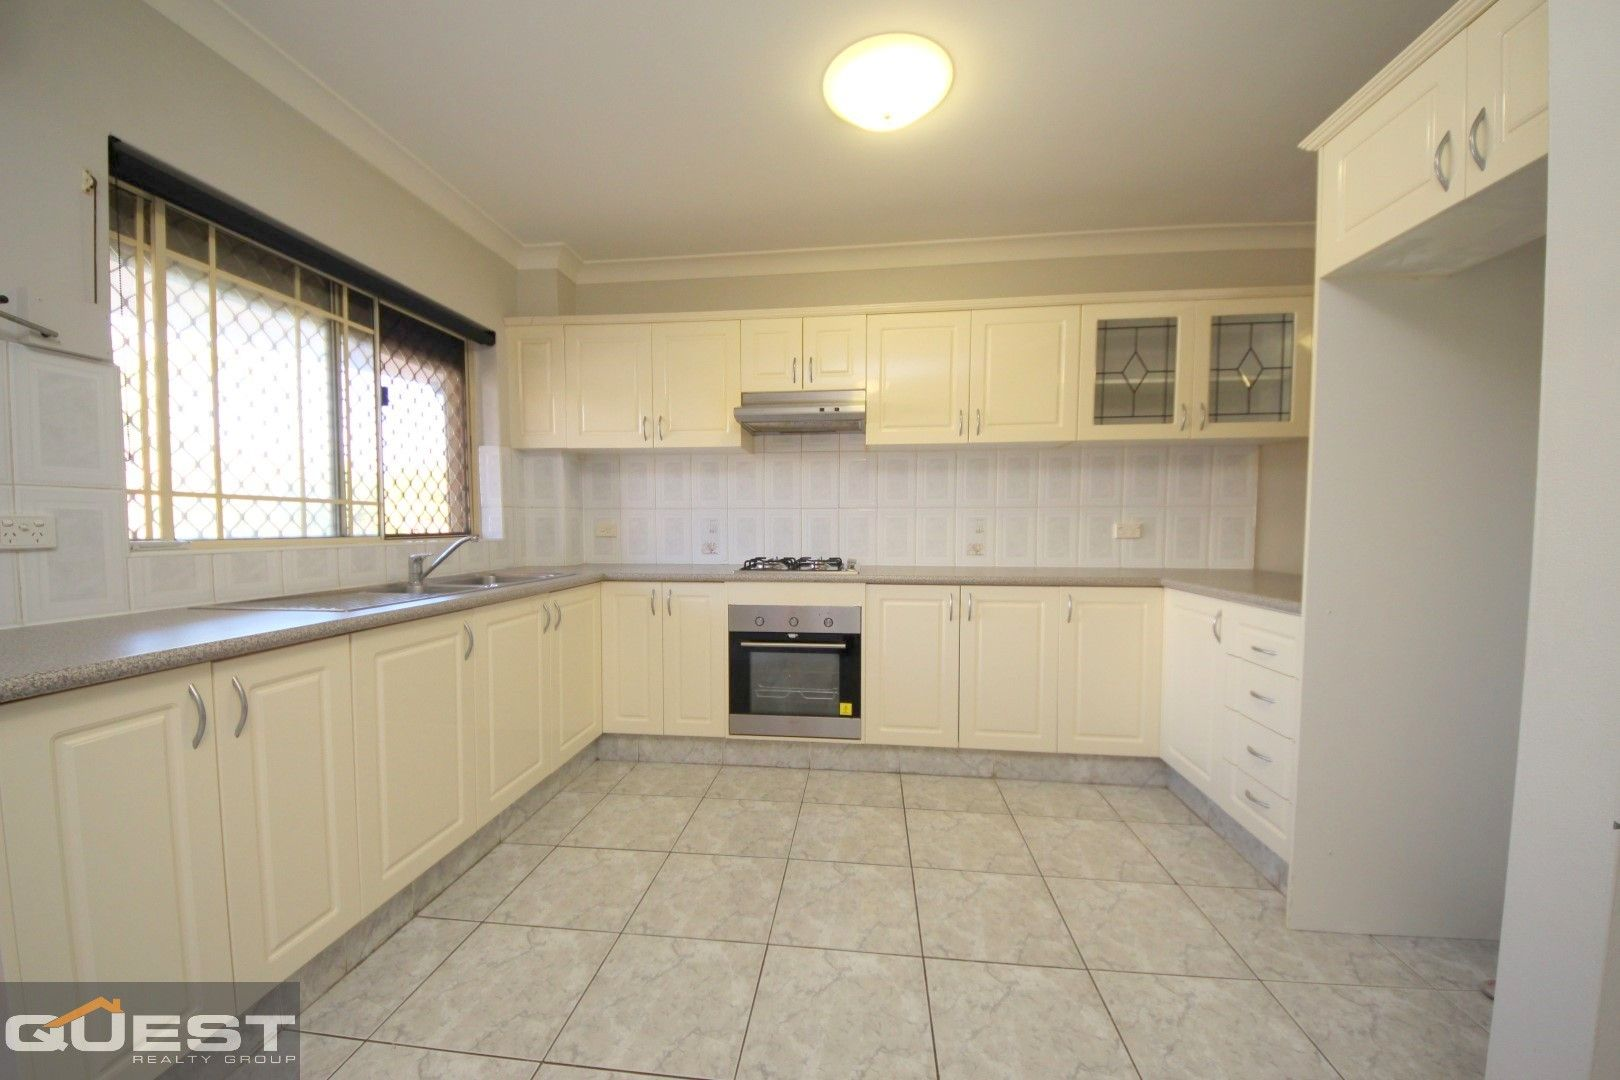 9/8-12 Bungalow Crescent, Bankstown NSW 2200, Image 2